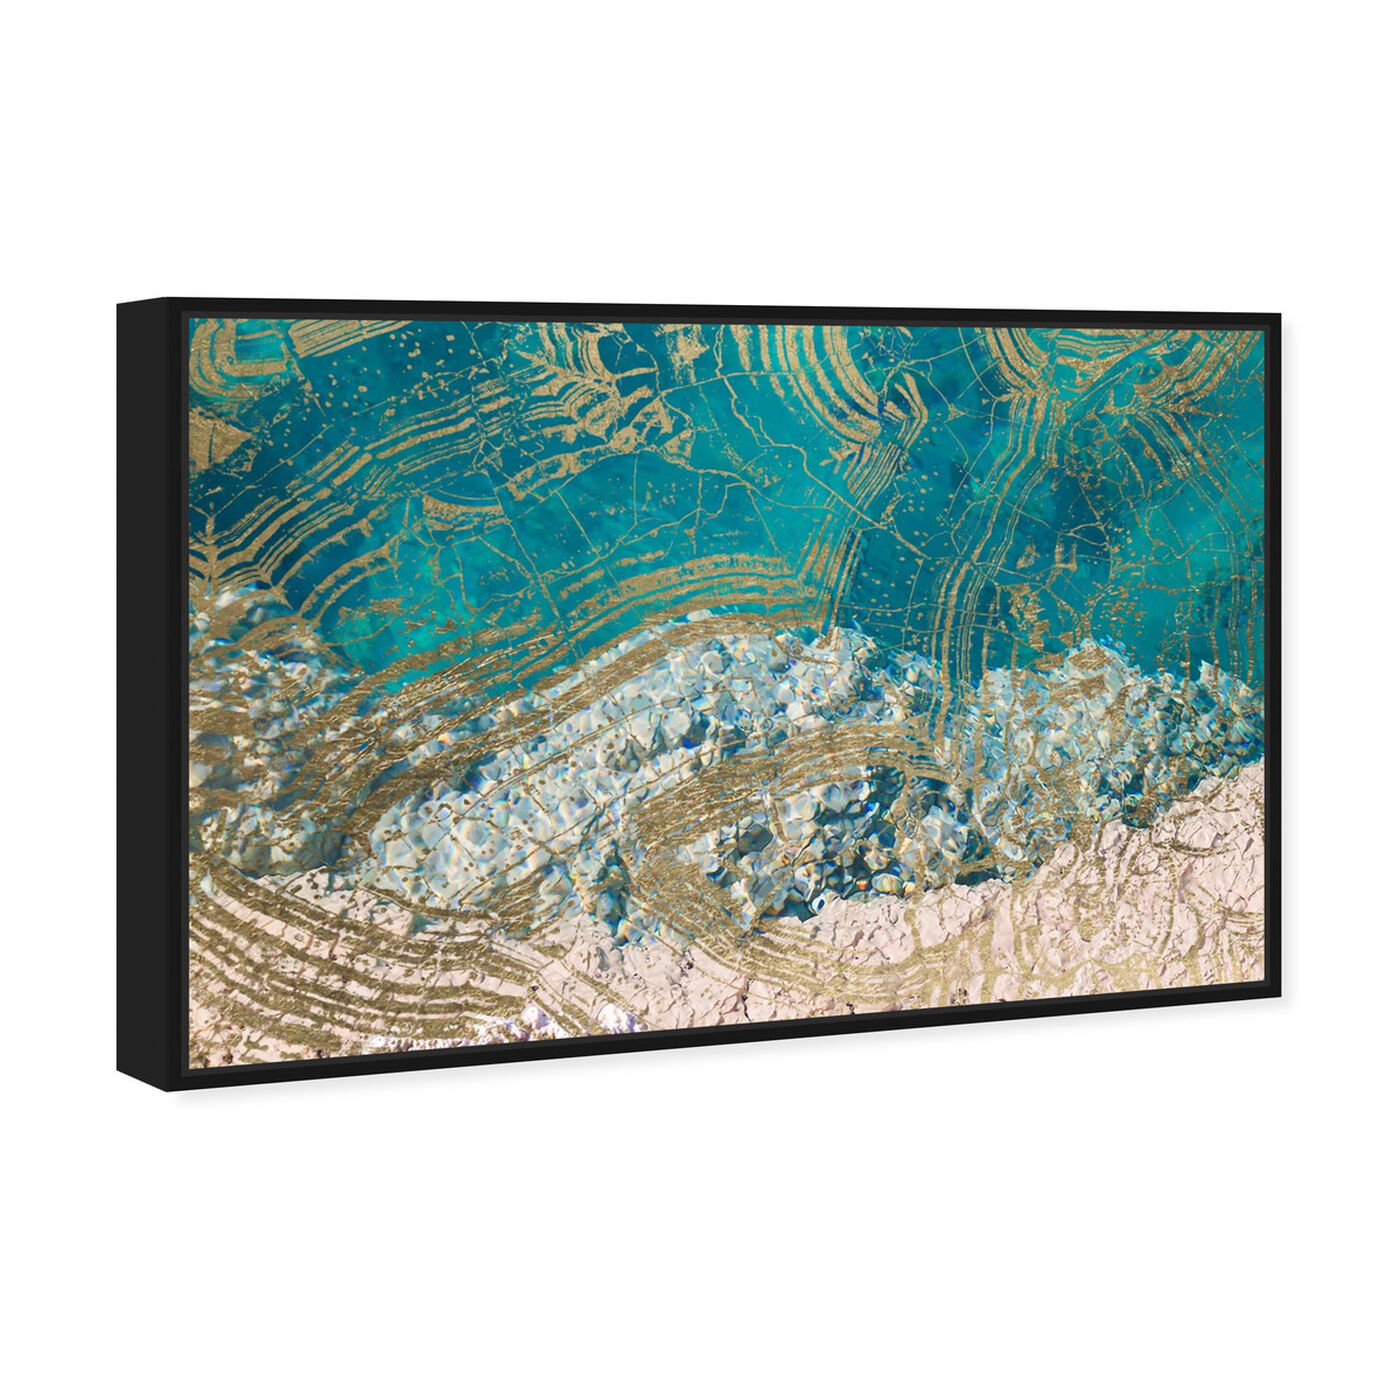 Angled view of Salt Water featuring abstract and textures art.